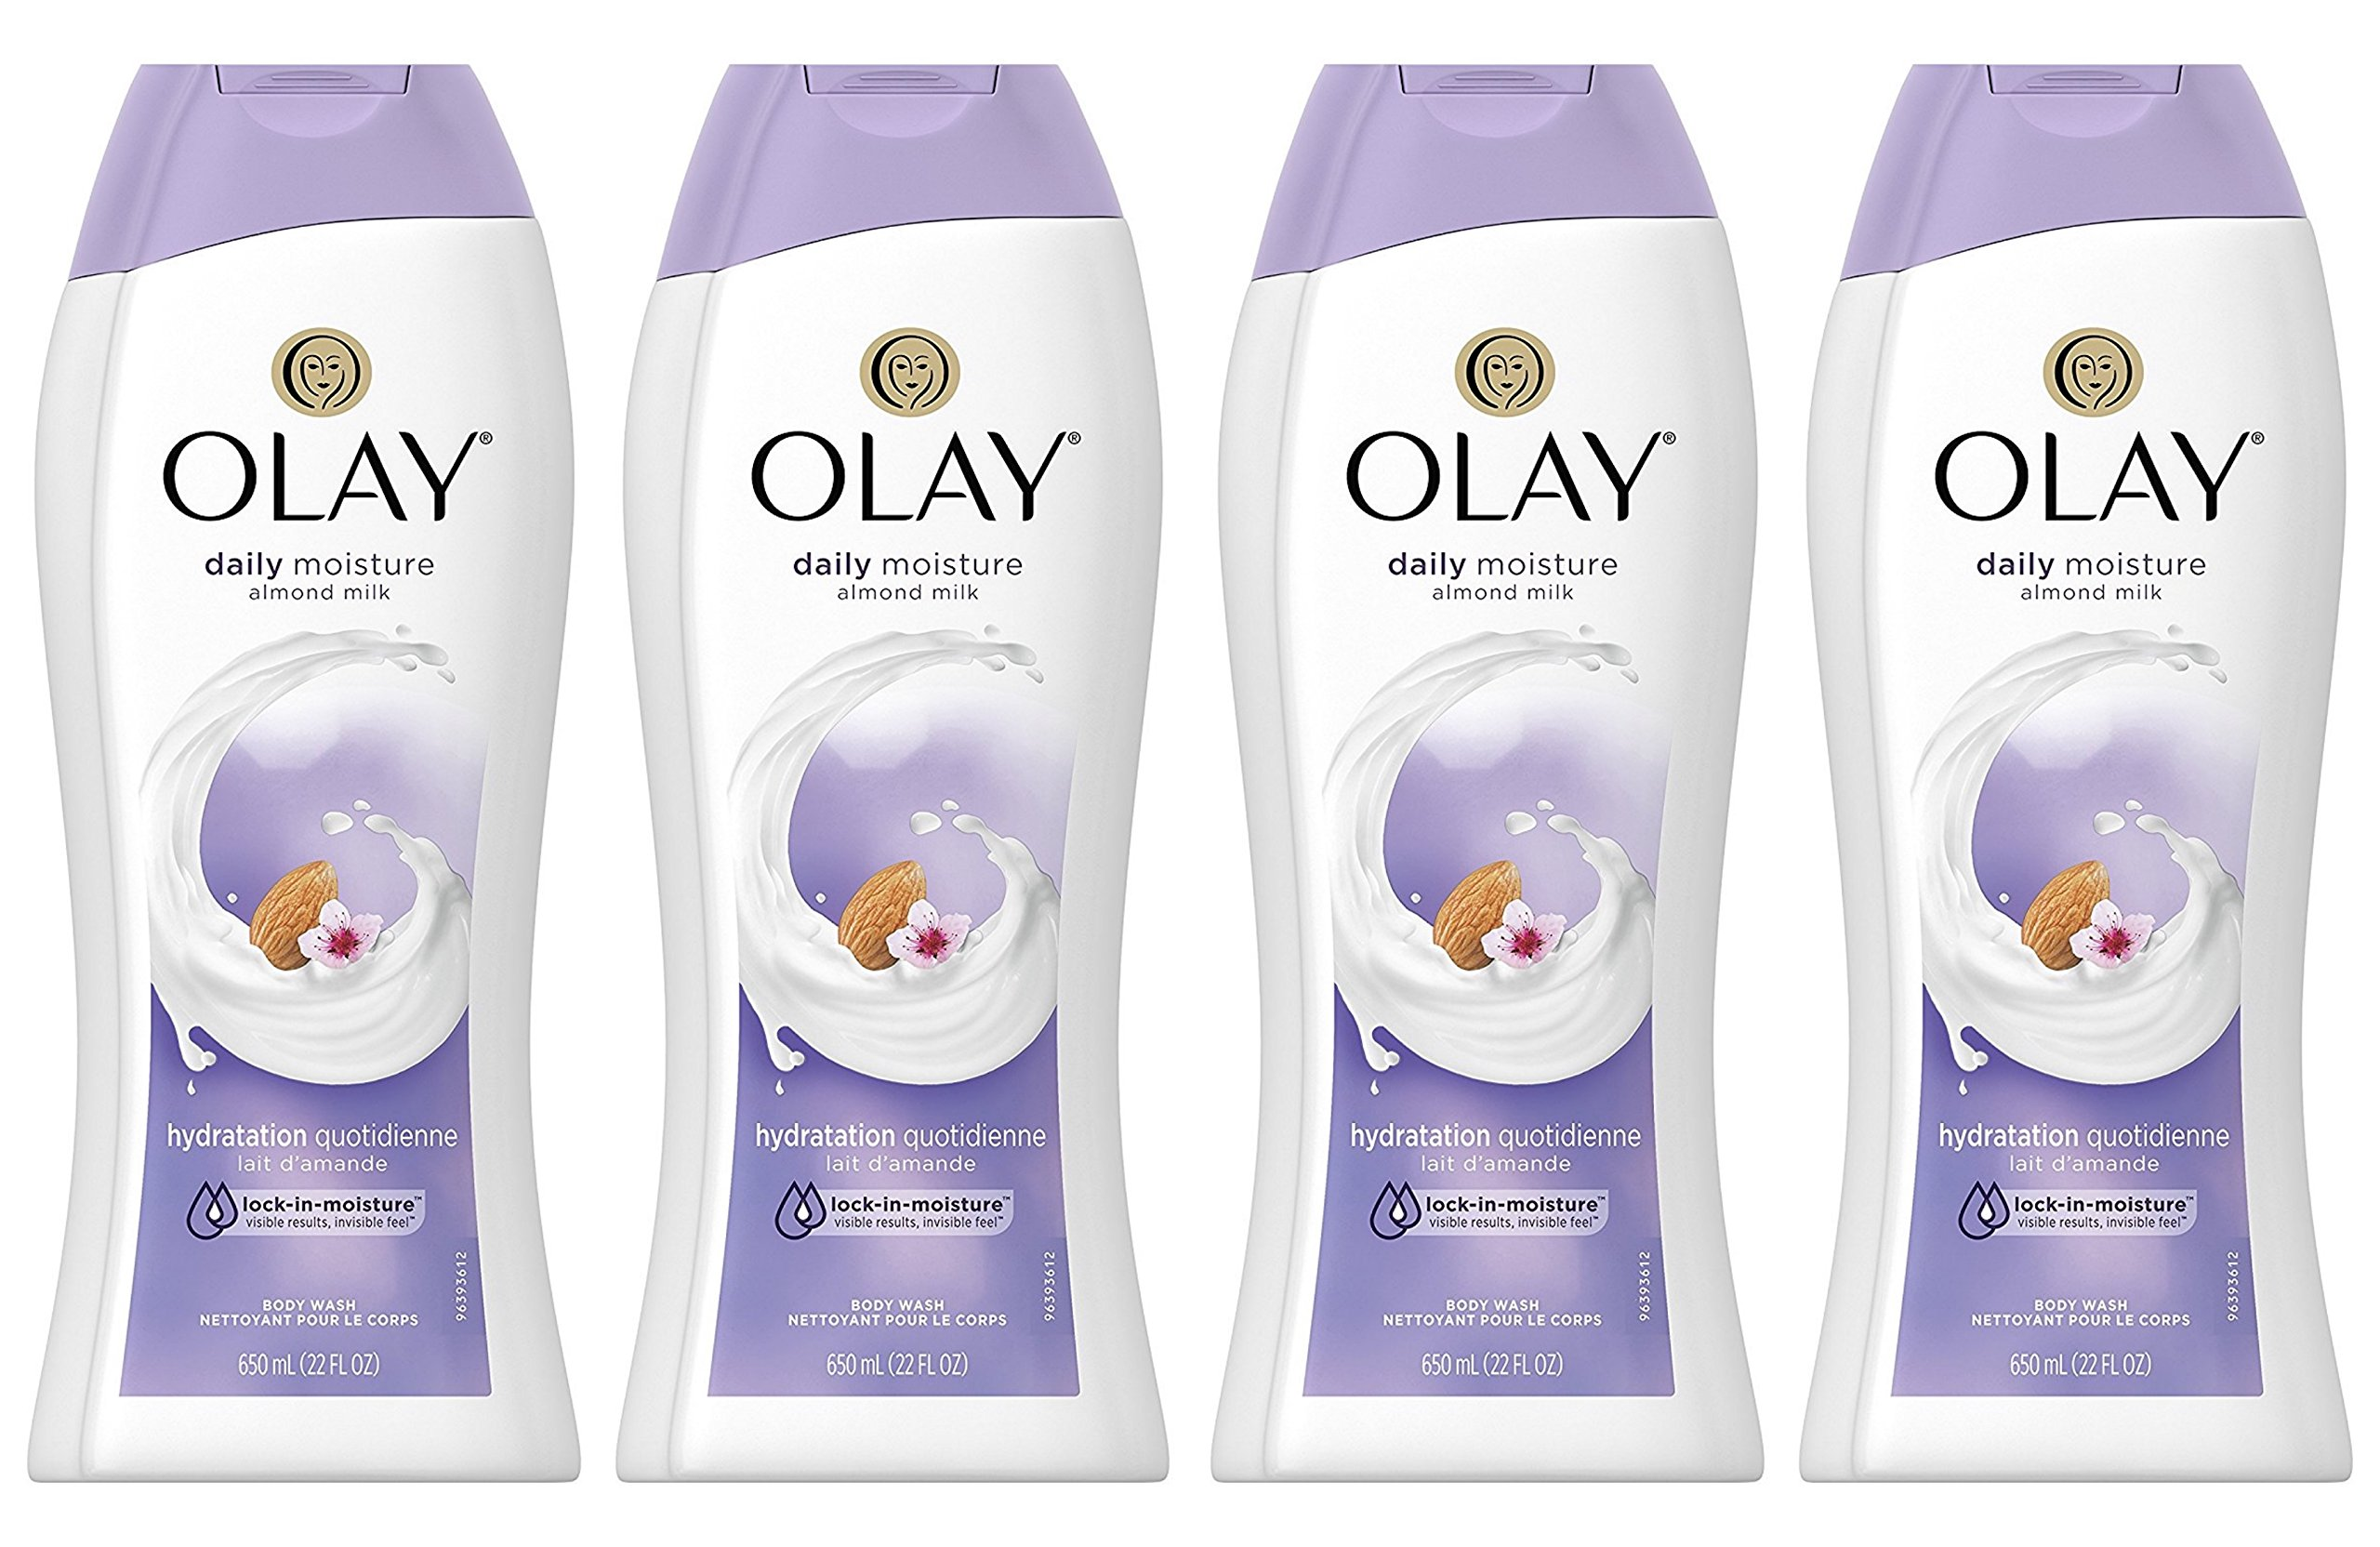 Body Wash for Women by Olay, Daily Moisture with Almond Milk Body Wash, 22 oz, (4 Count) by Olay